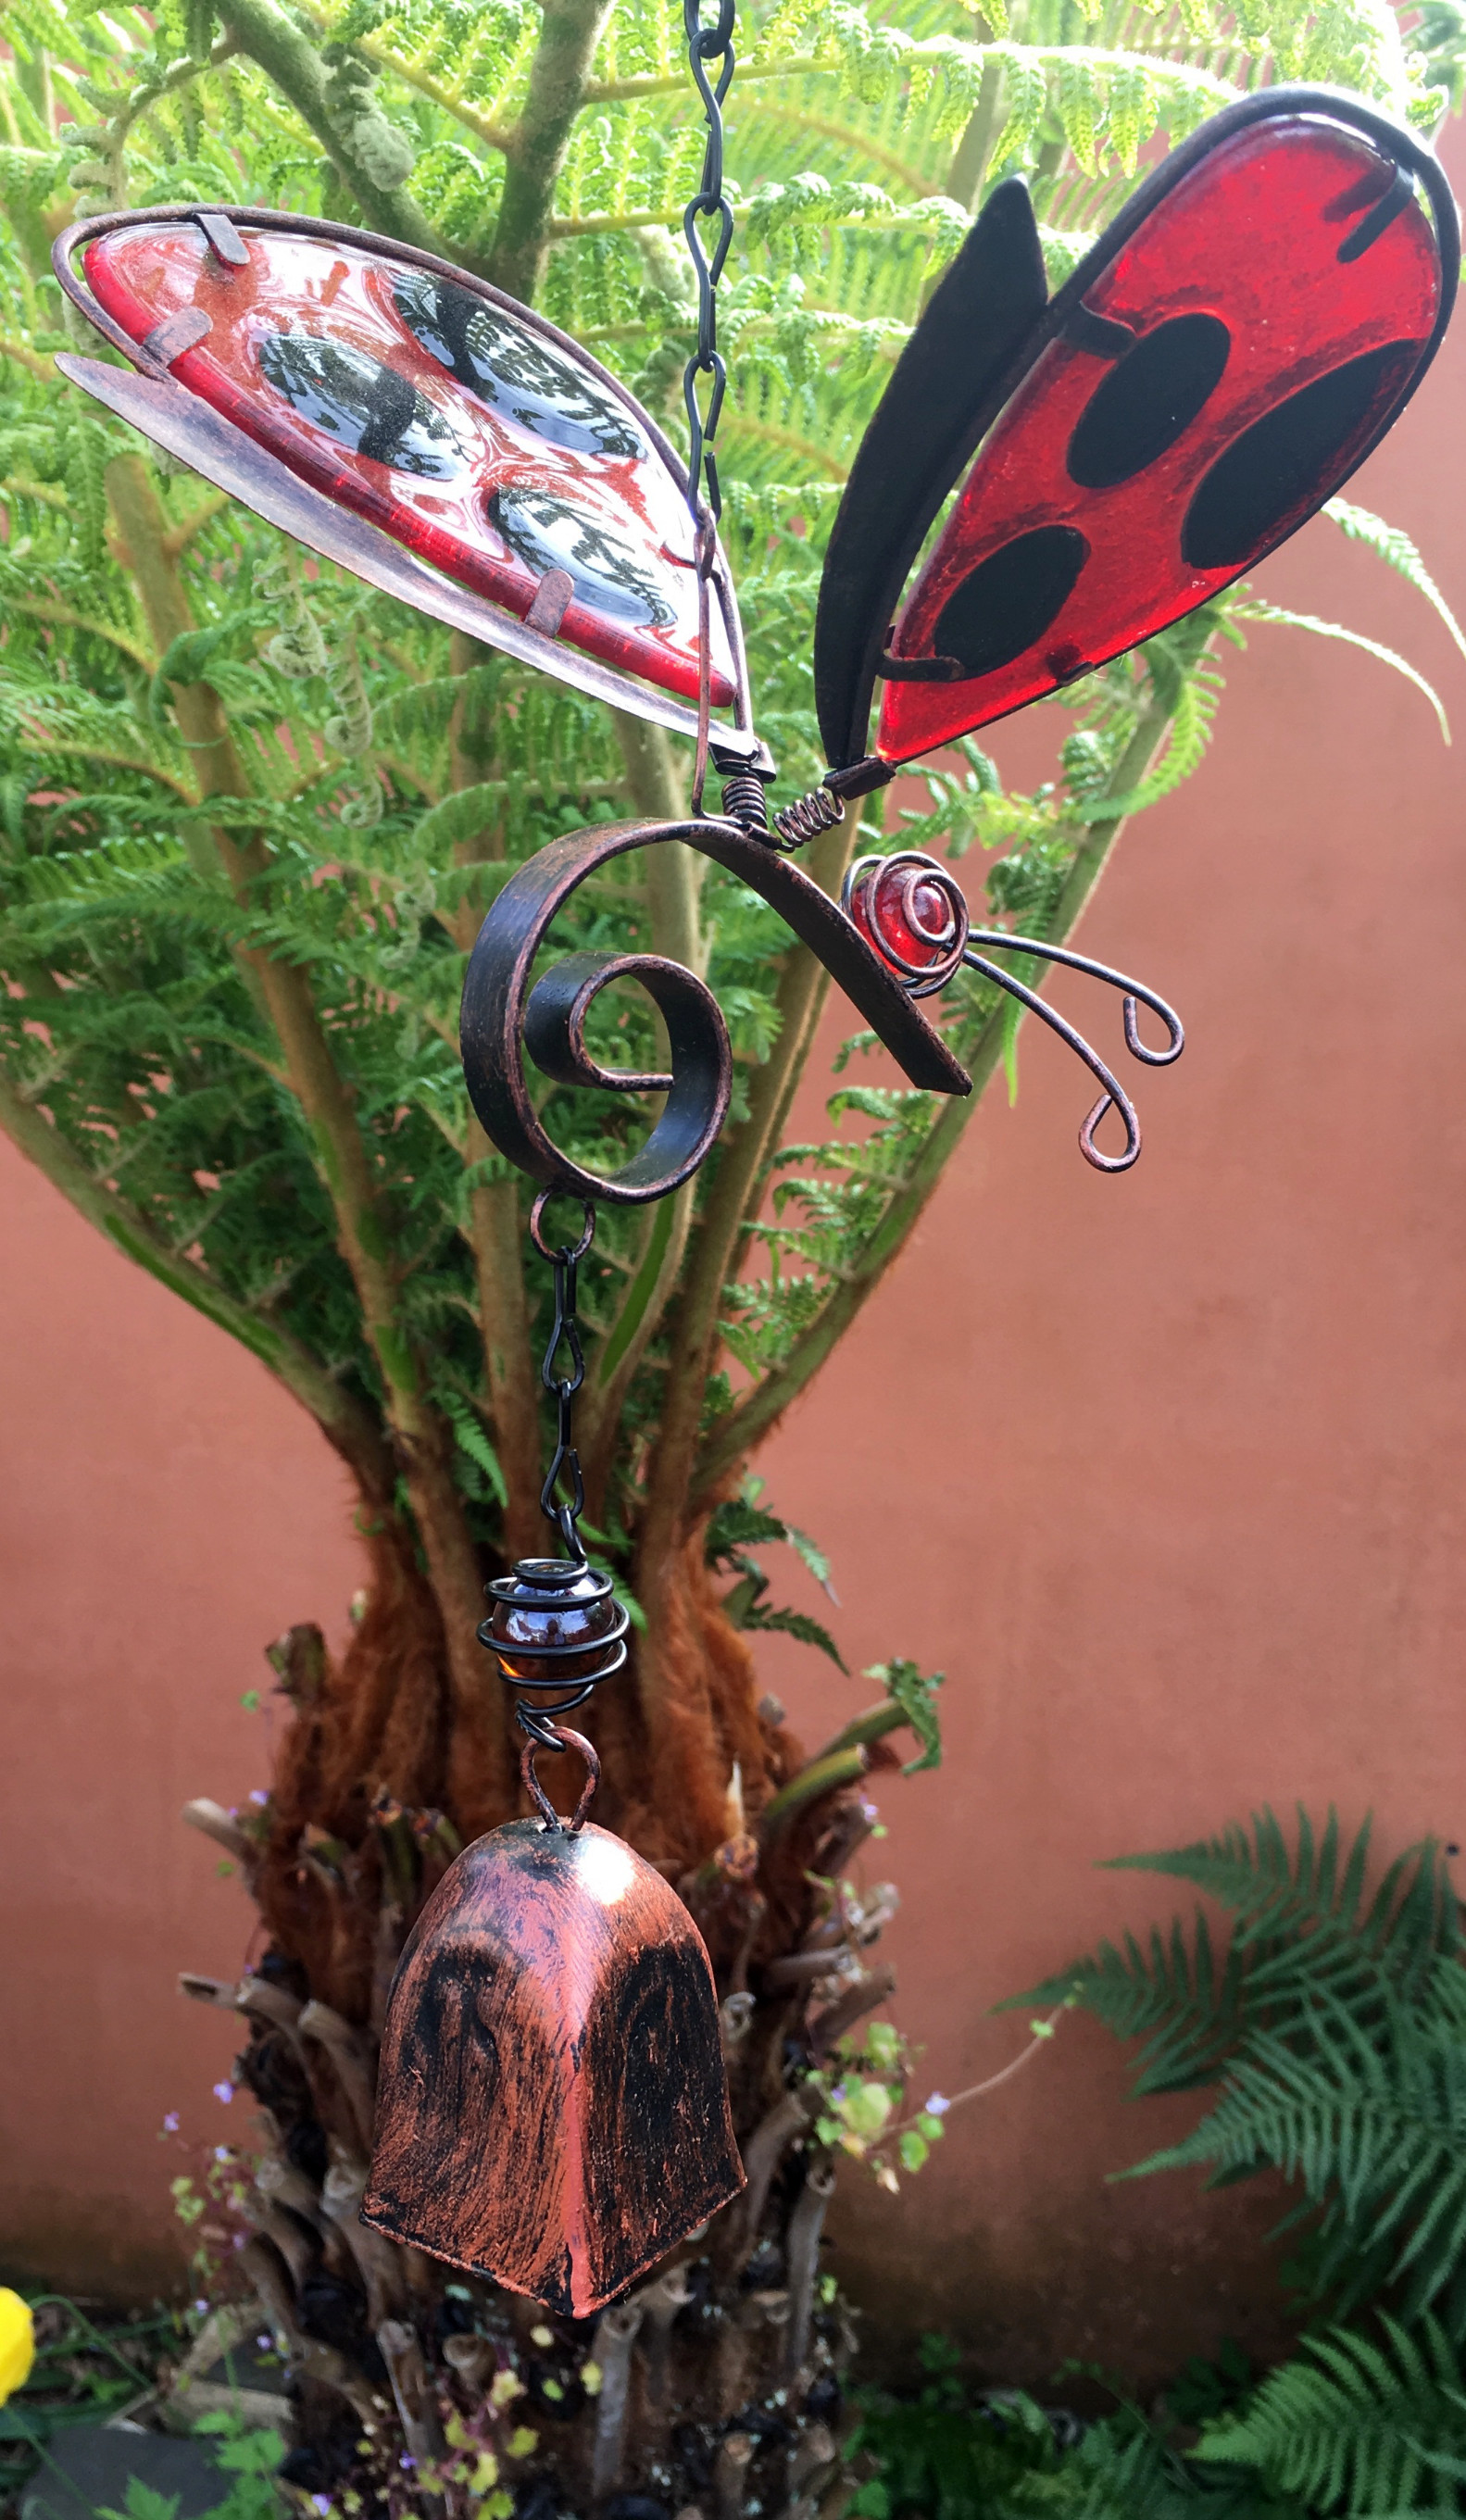 Large-Metal-amp-Glass-Hanging-Sun-Catcher-Wind-Chime-Home-Garden-Decorations thumbnail 7